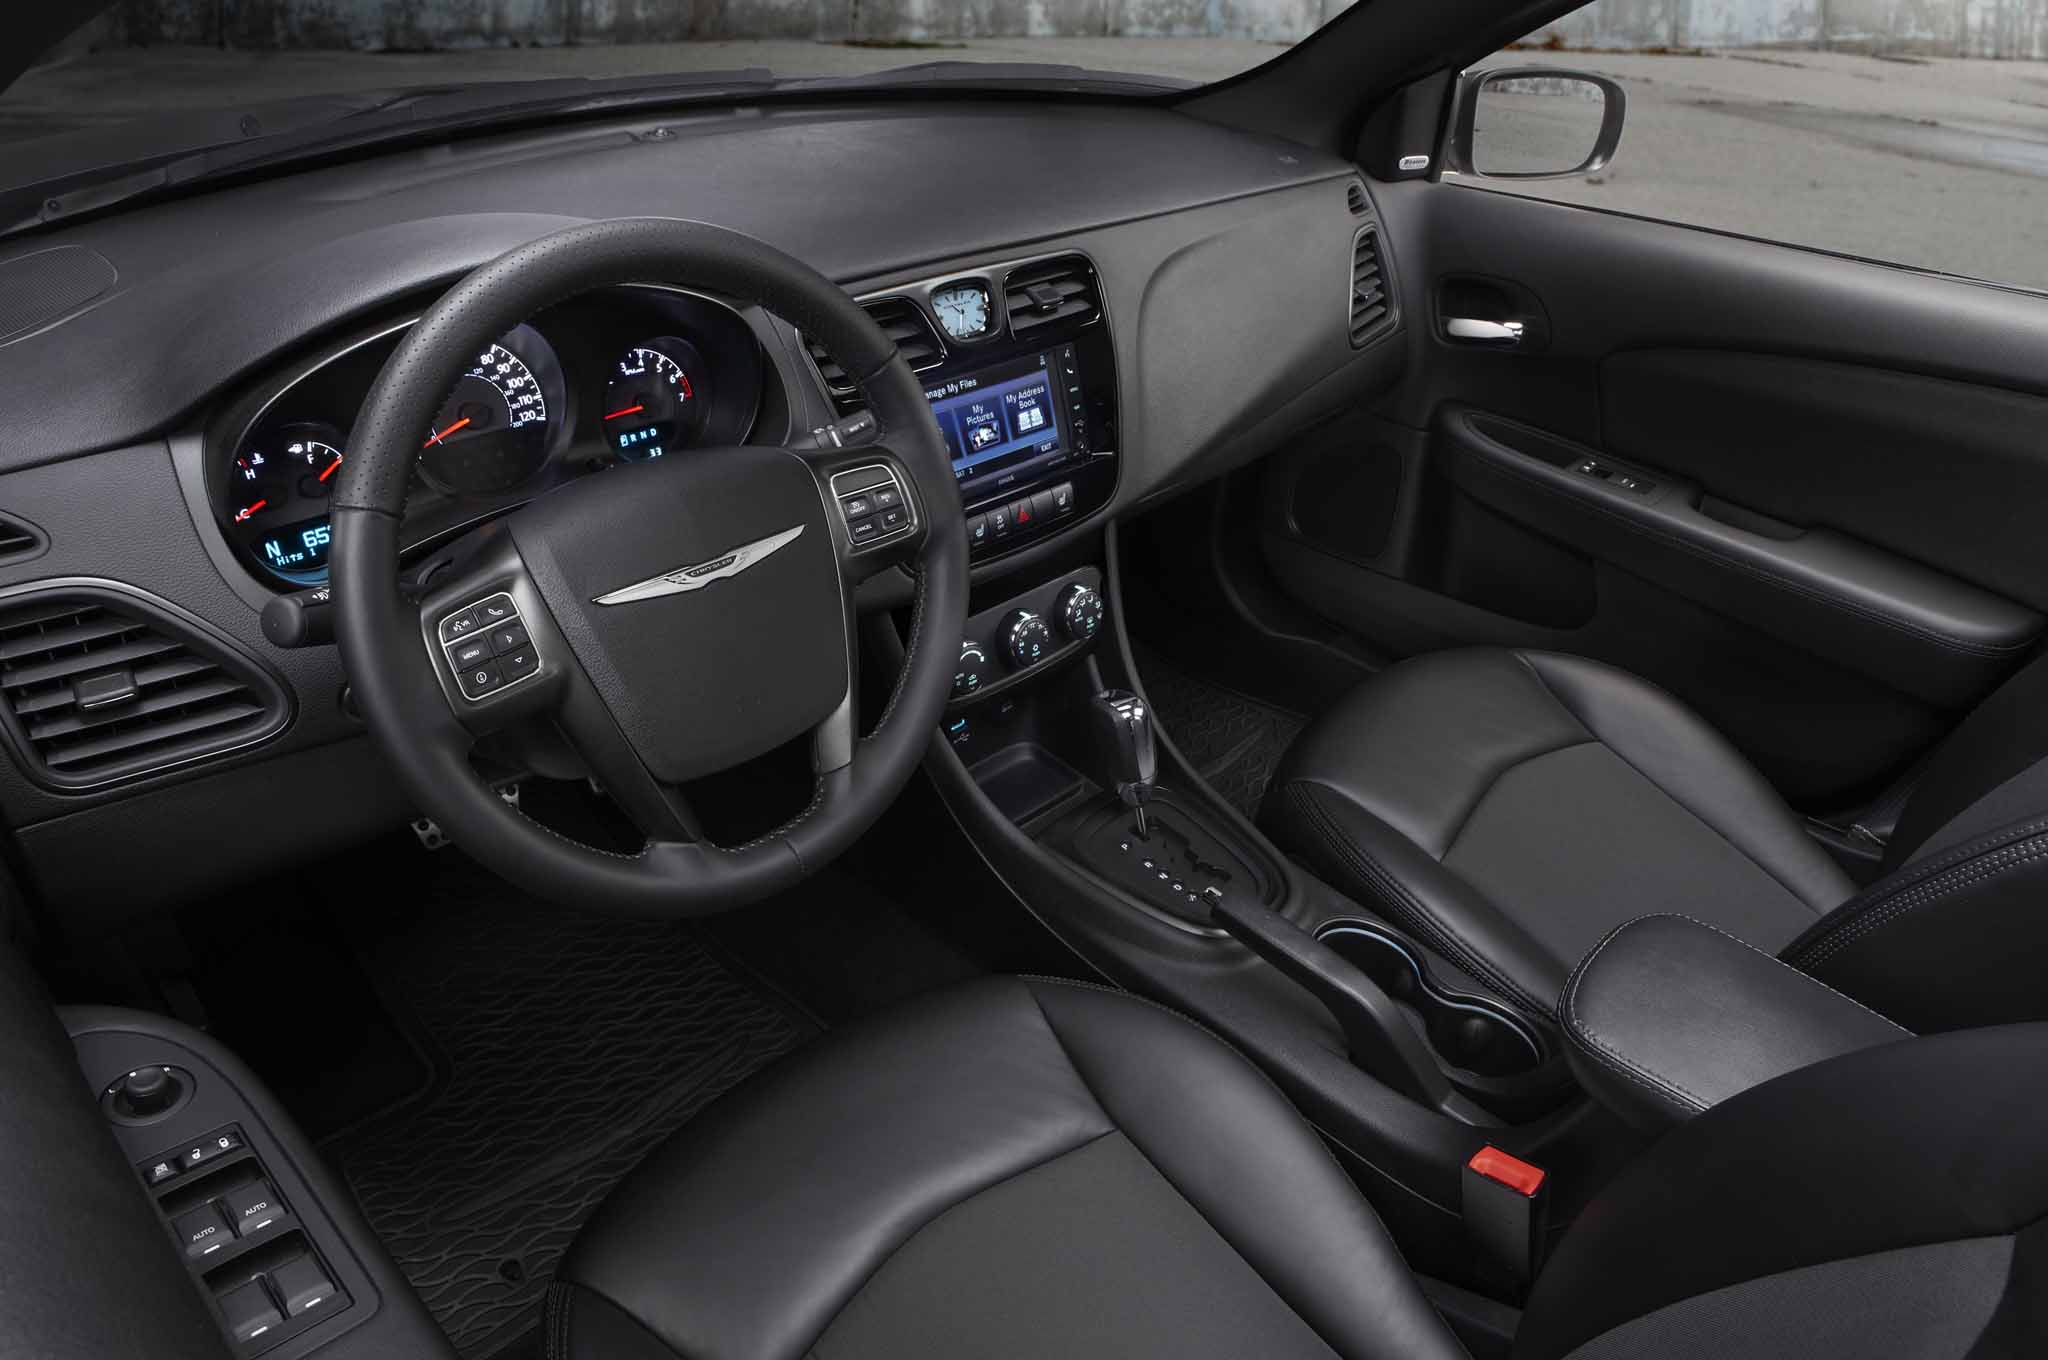 Report Next Chrysler 200 to Score 38 MPG Have 9 Speed Automatic